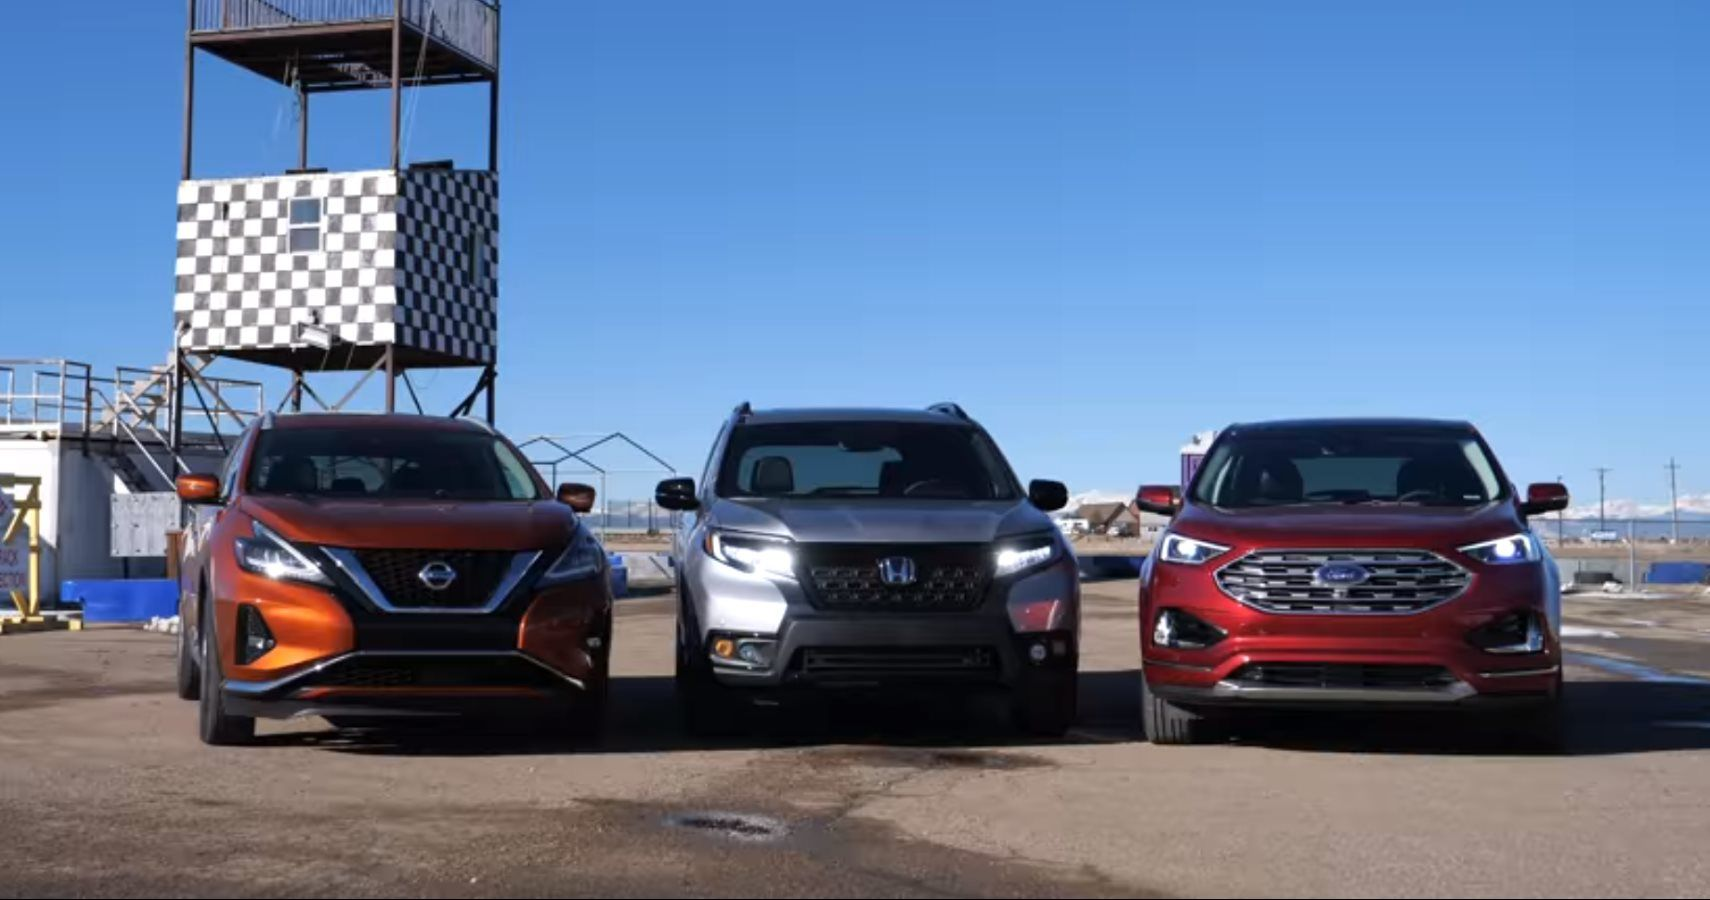 Honda Passport Ford Edge Nissan Murano Race For Crossover Supremacy